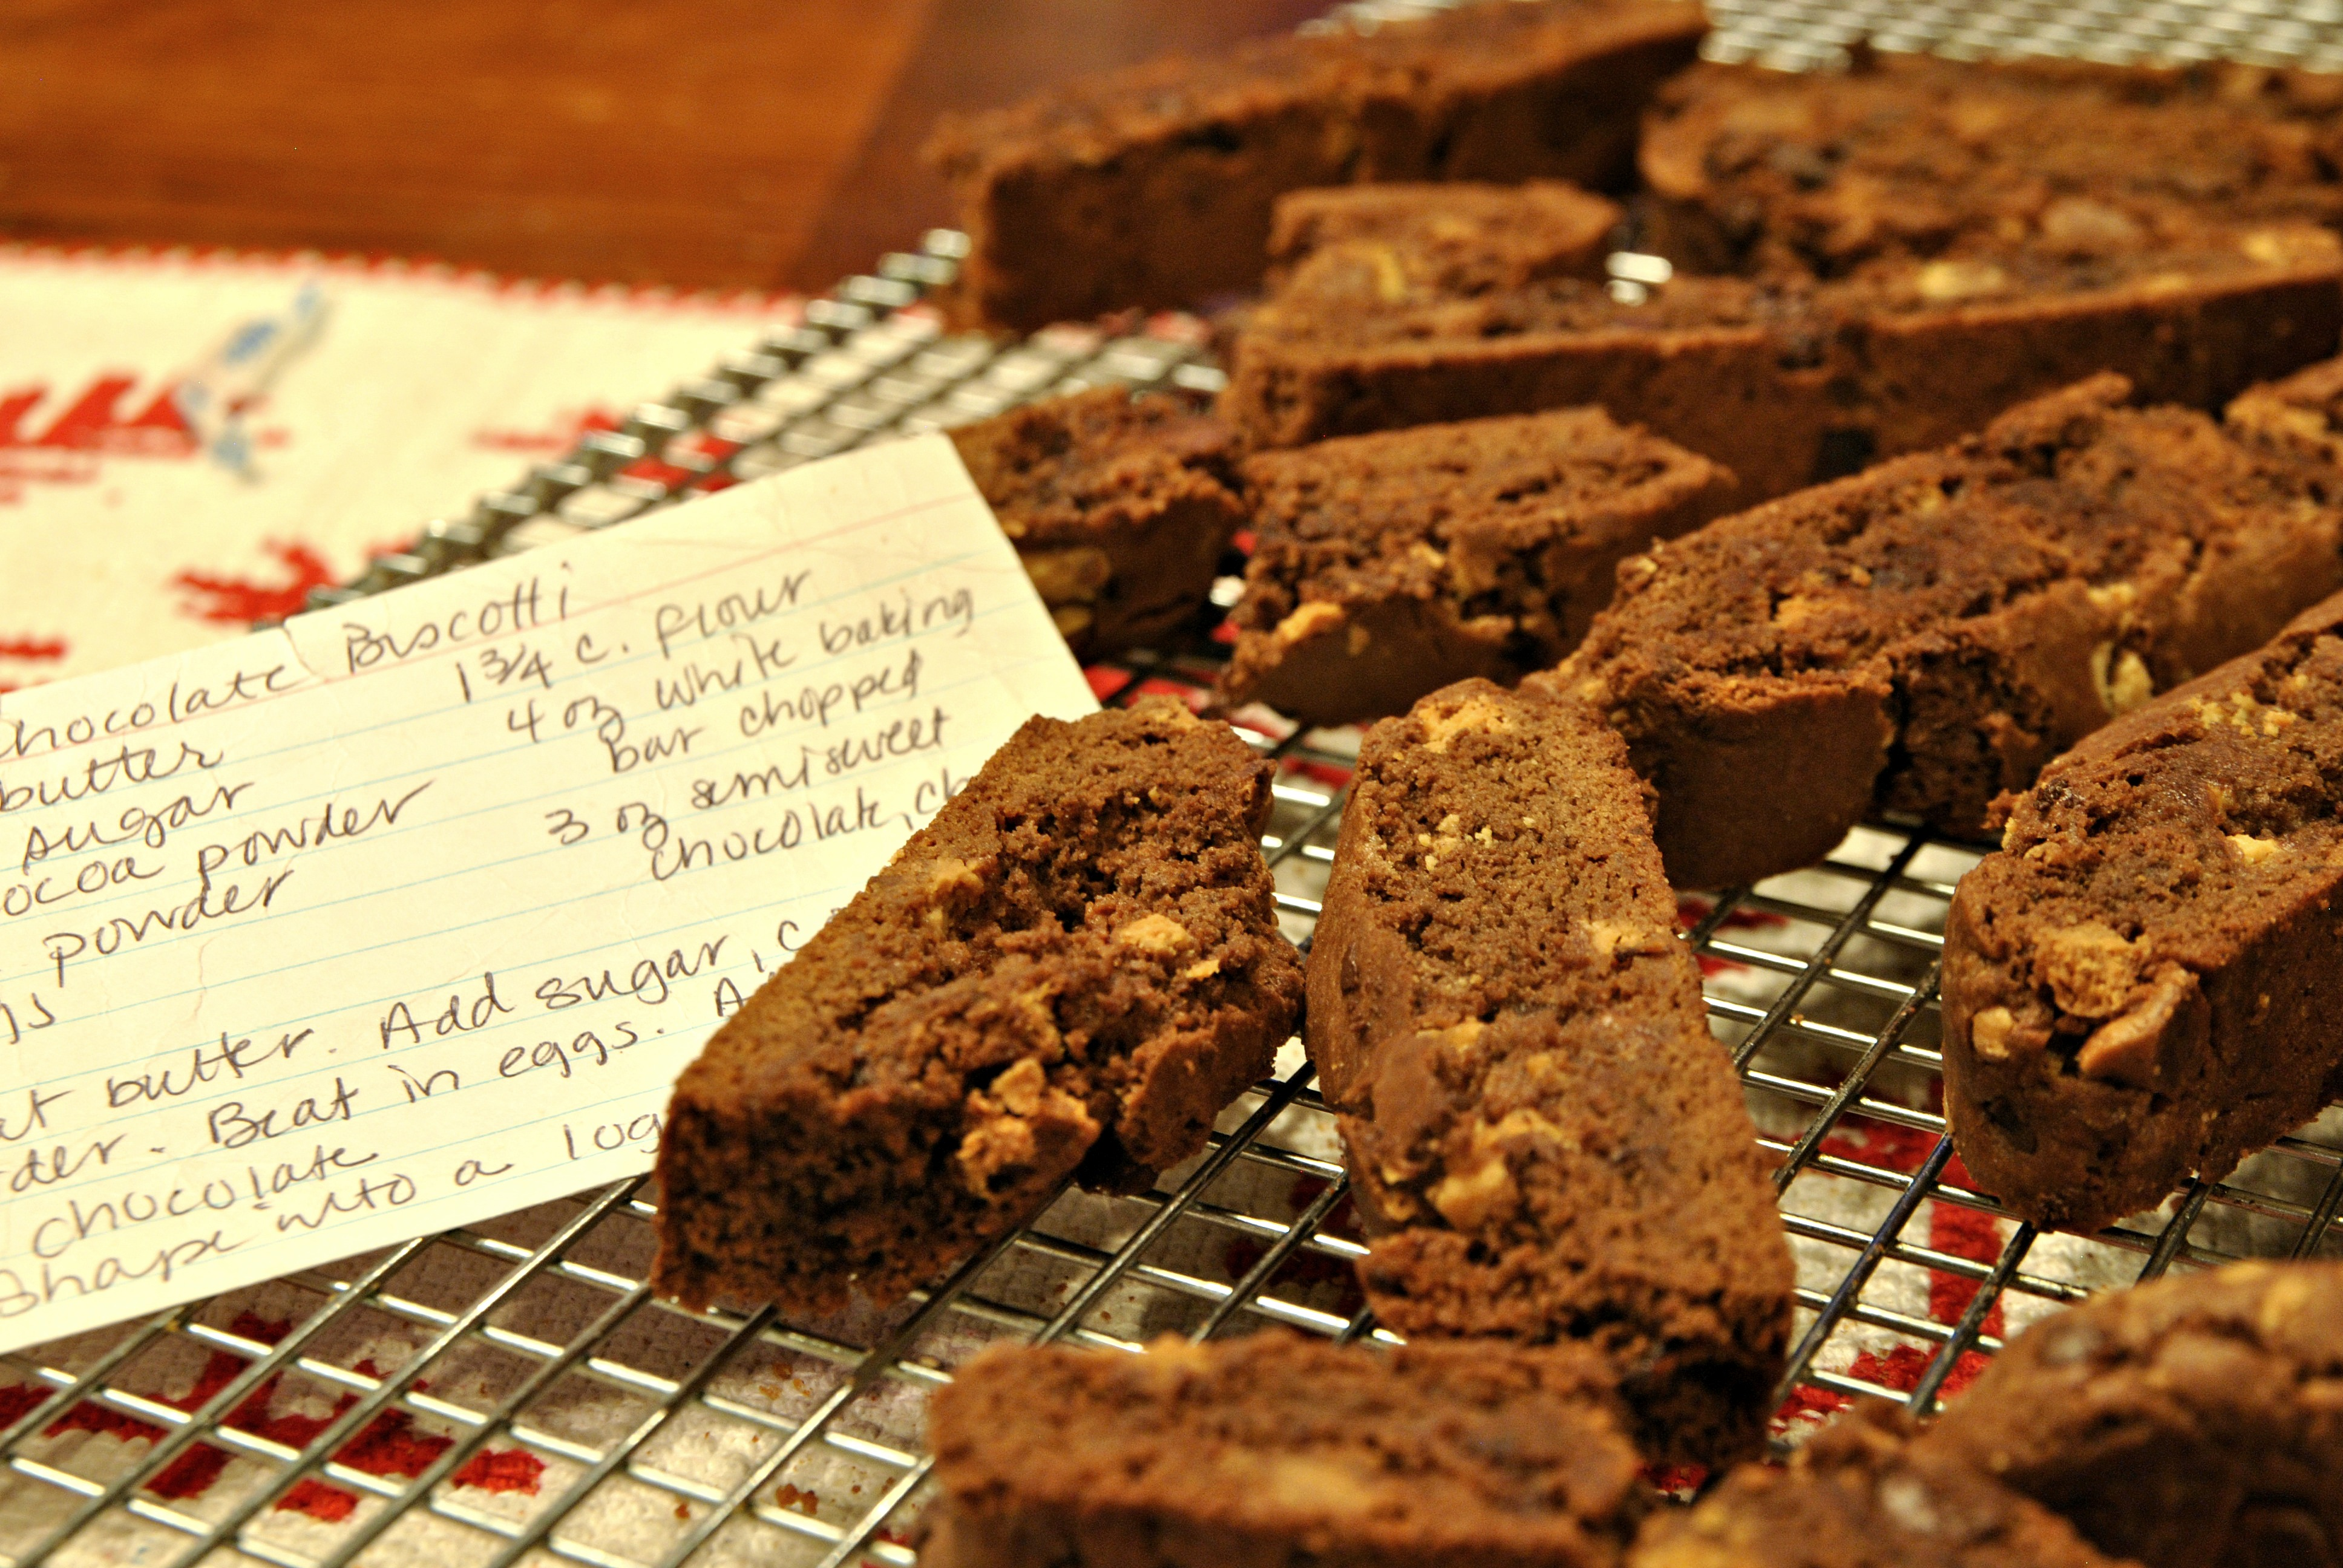 Biscotti: A friend's tradition kept alive